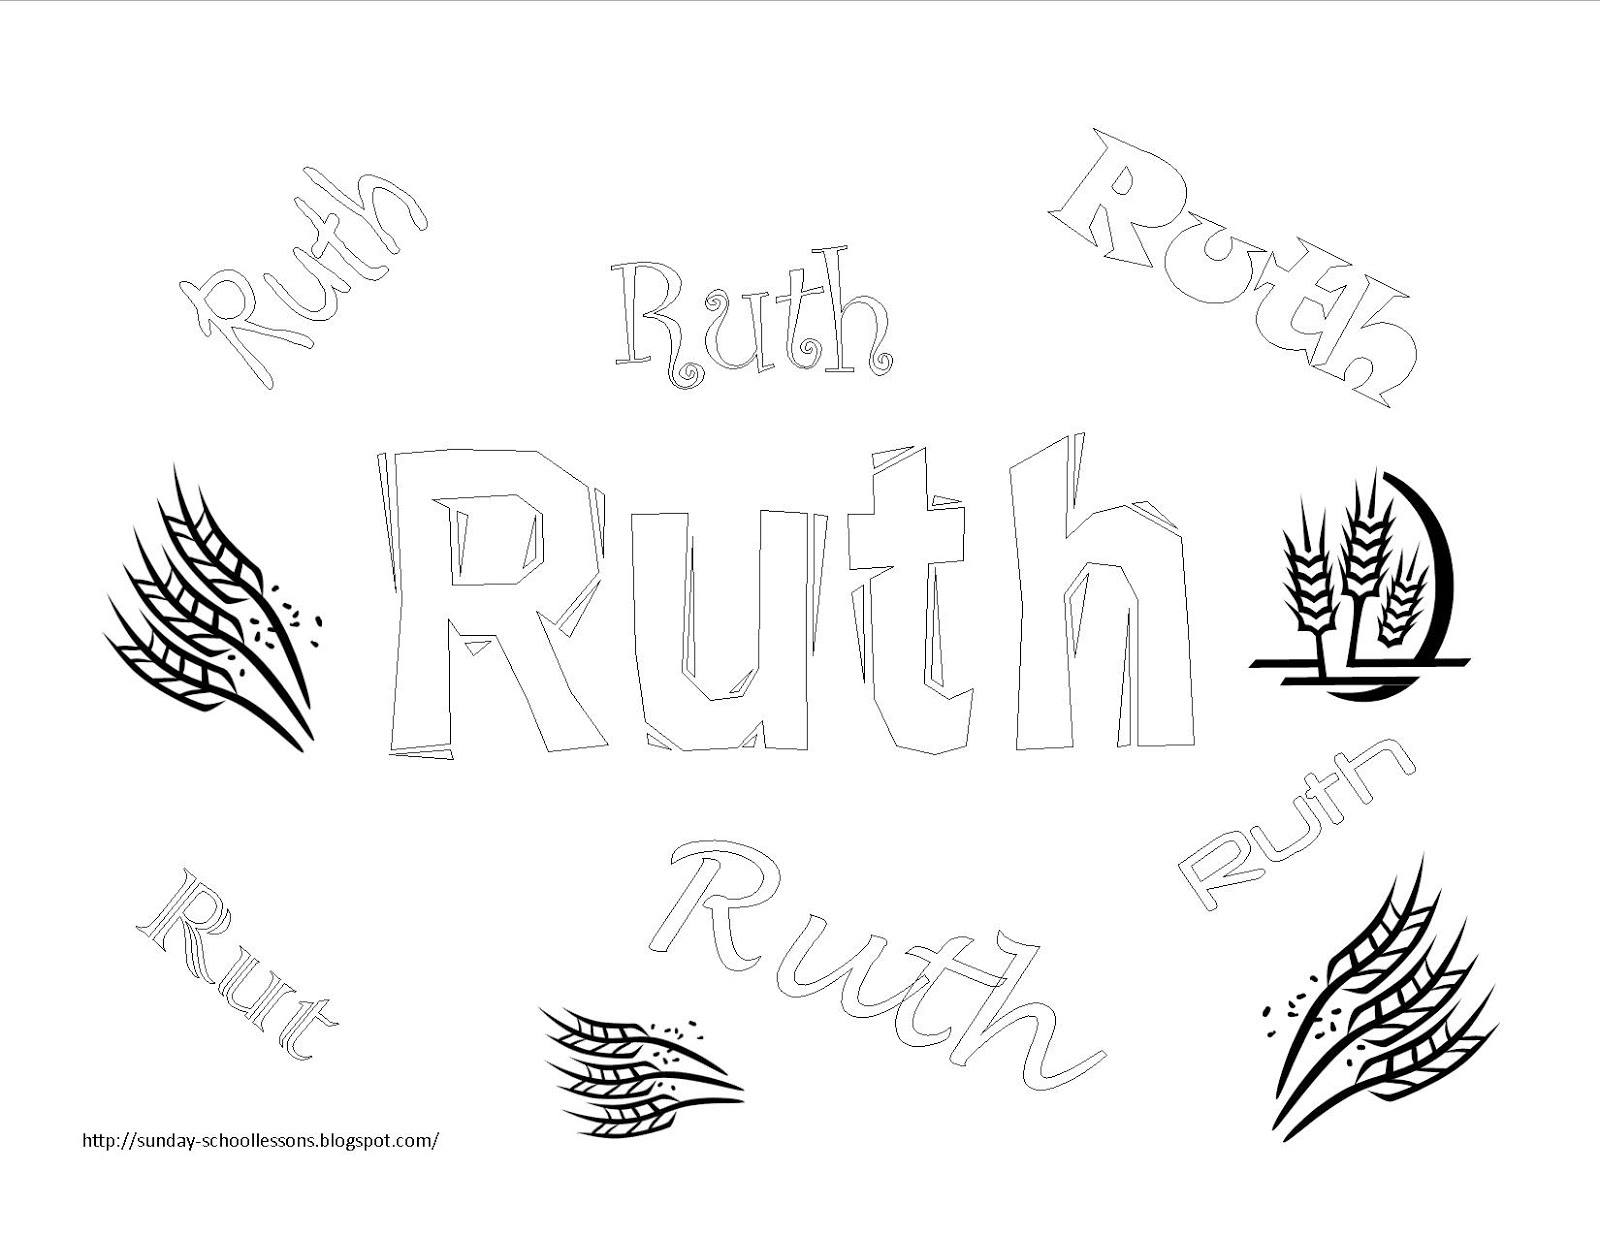 This is a picture of Handy Ruth Coloring Page